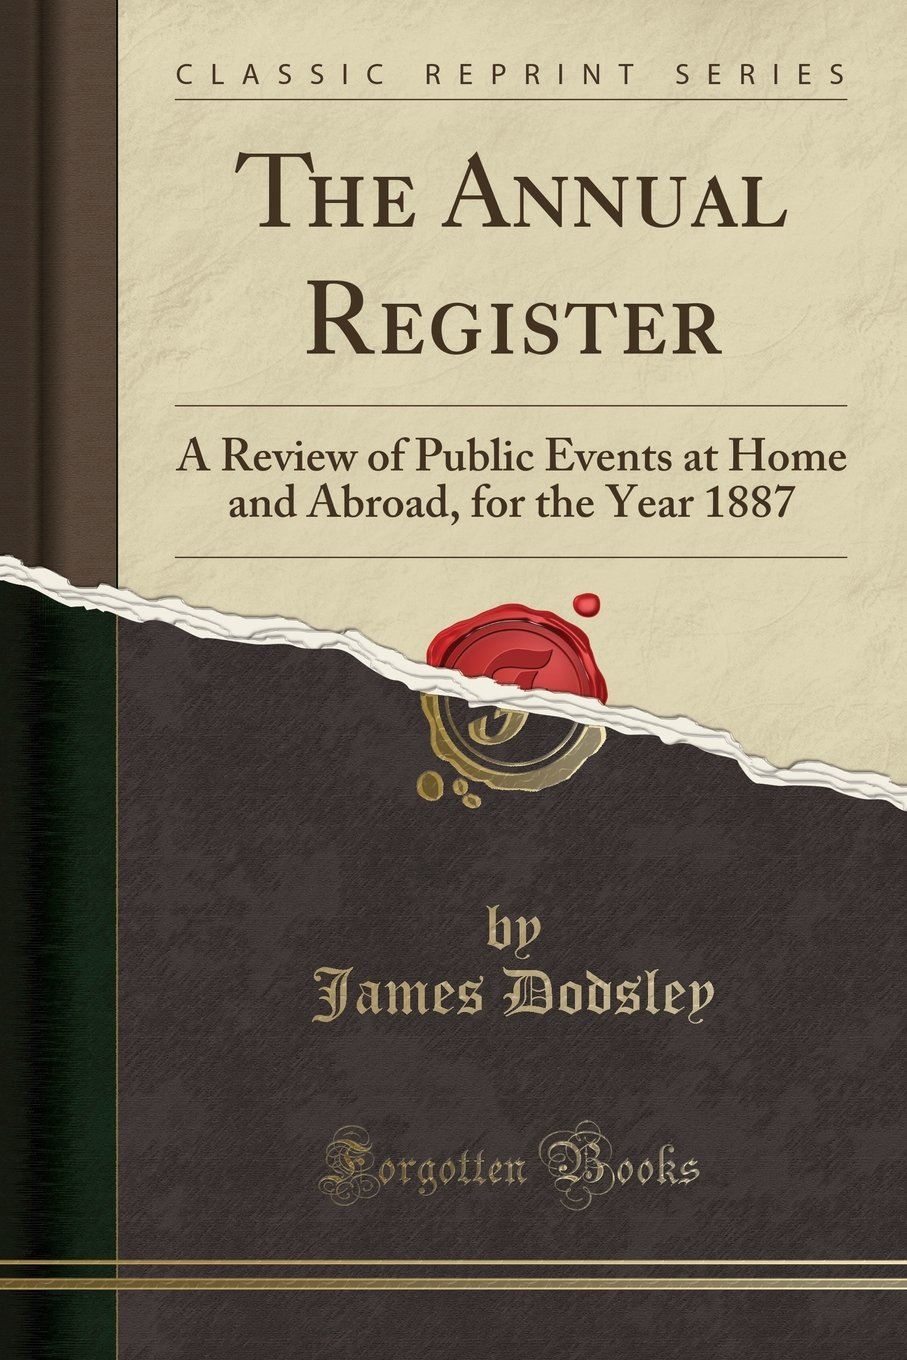 Download The Annual Register: A Review of Public Events at Home and Abroad, for the Year 1887 (Classic Reprint) PDF